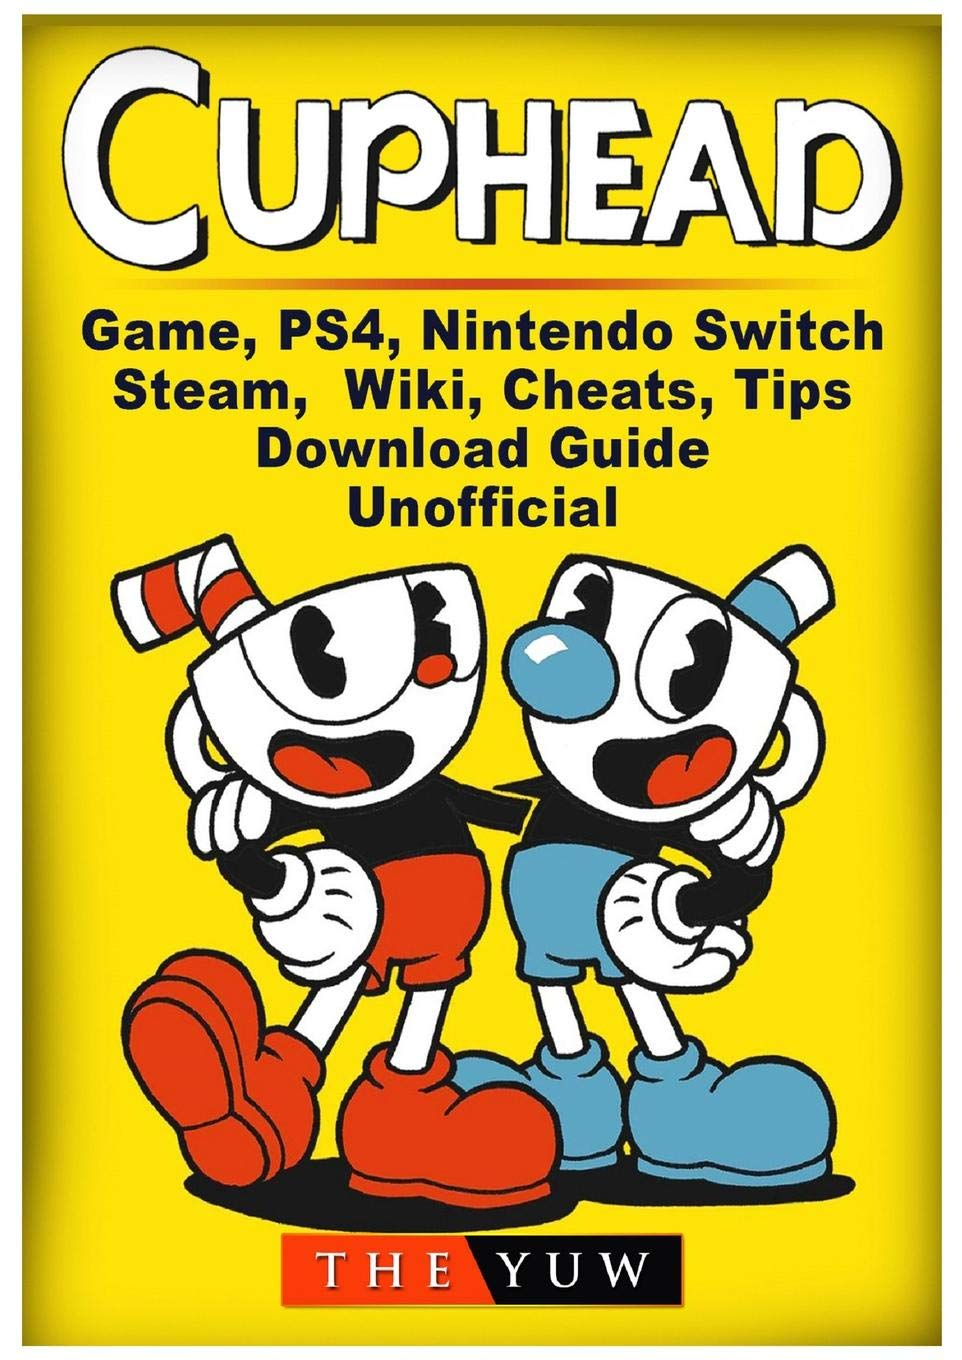 Cuphead Game, PS4, Nintendo Switch, Steam, Wiki, Cheats, Tips, Download Guide Unofficial por The Yuw